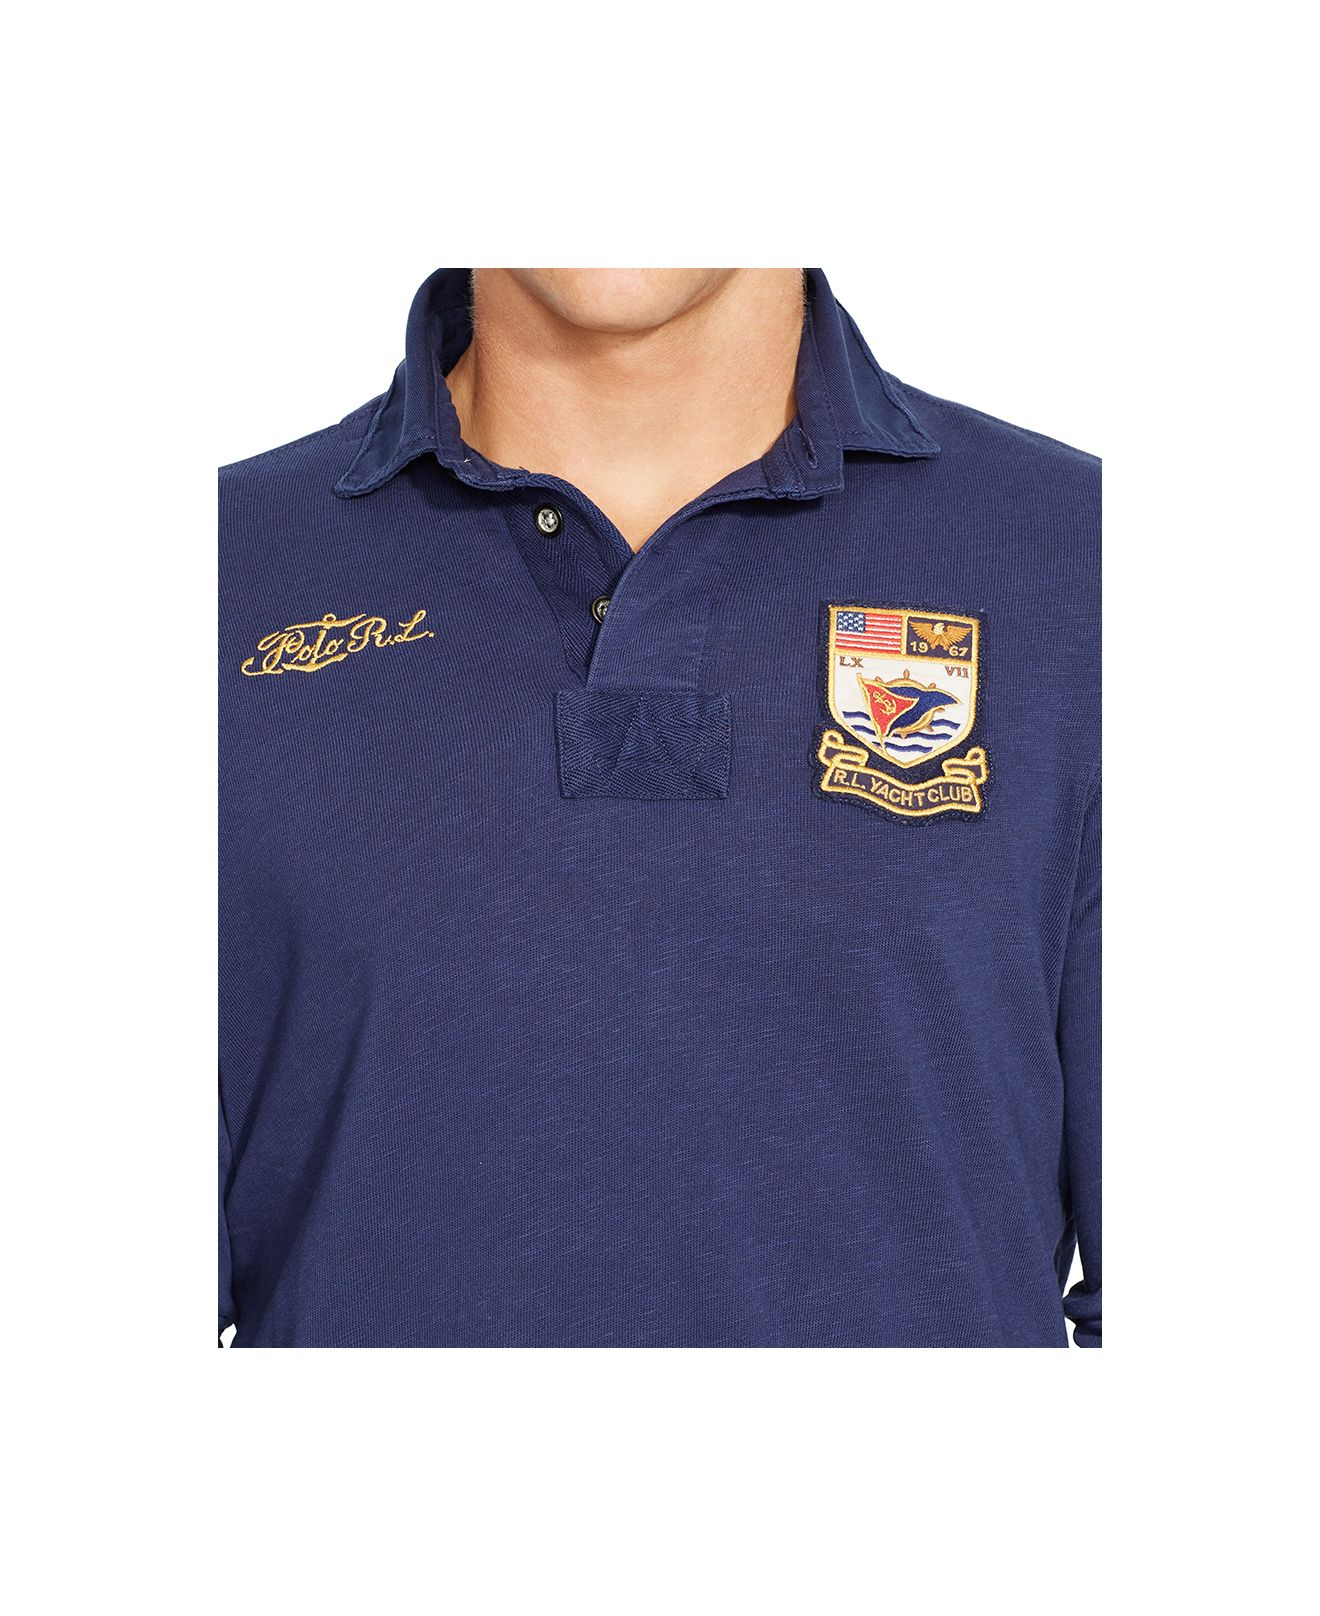 Polo ralph lauren yacht club jersey rugby shirt in blue for Ralph lauren polo club shirts